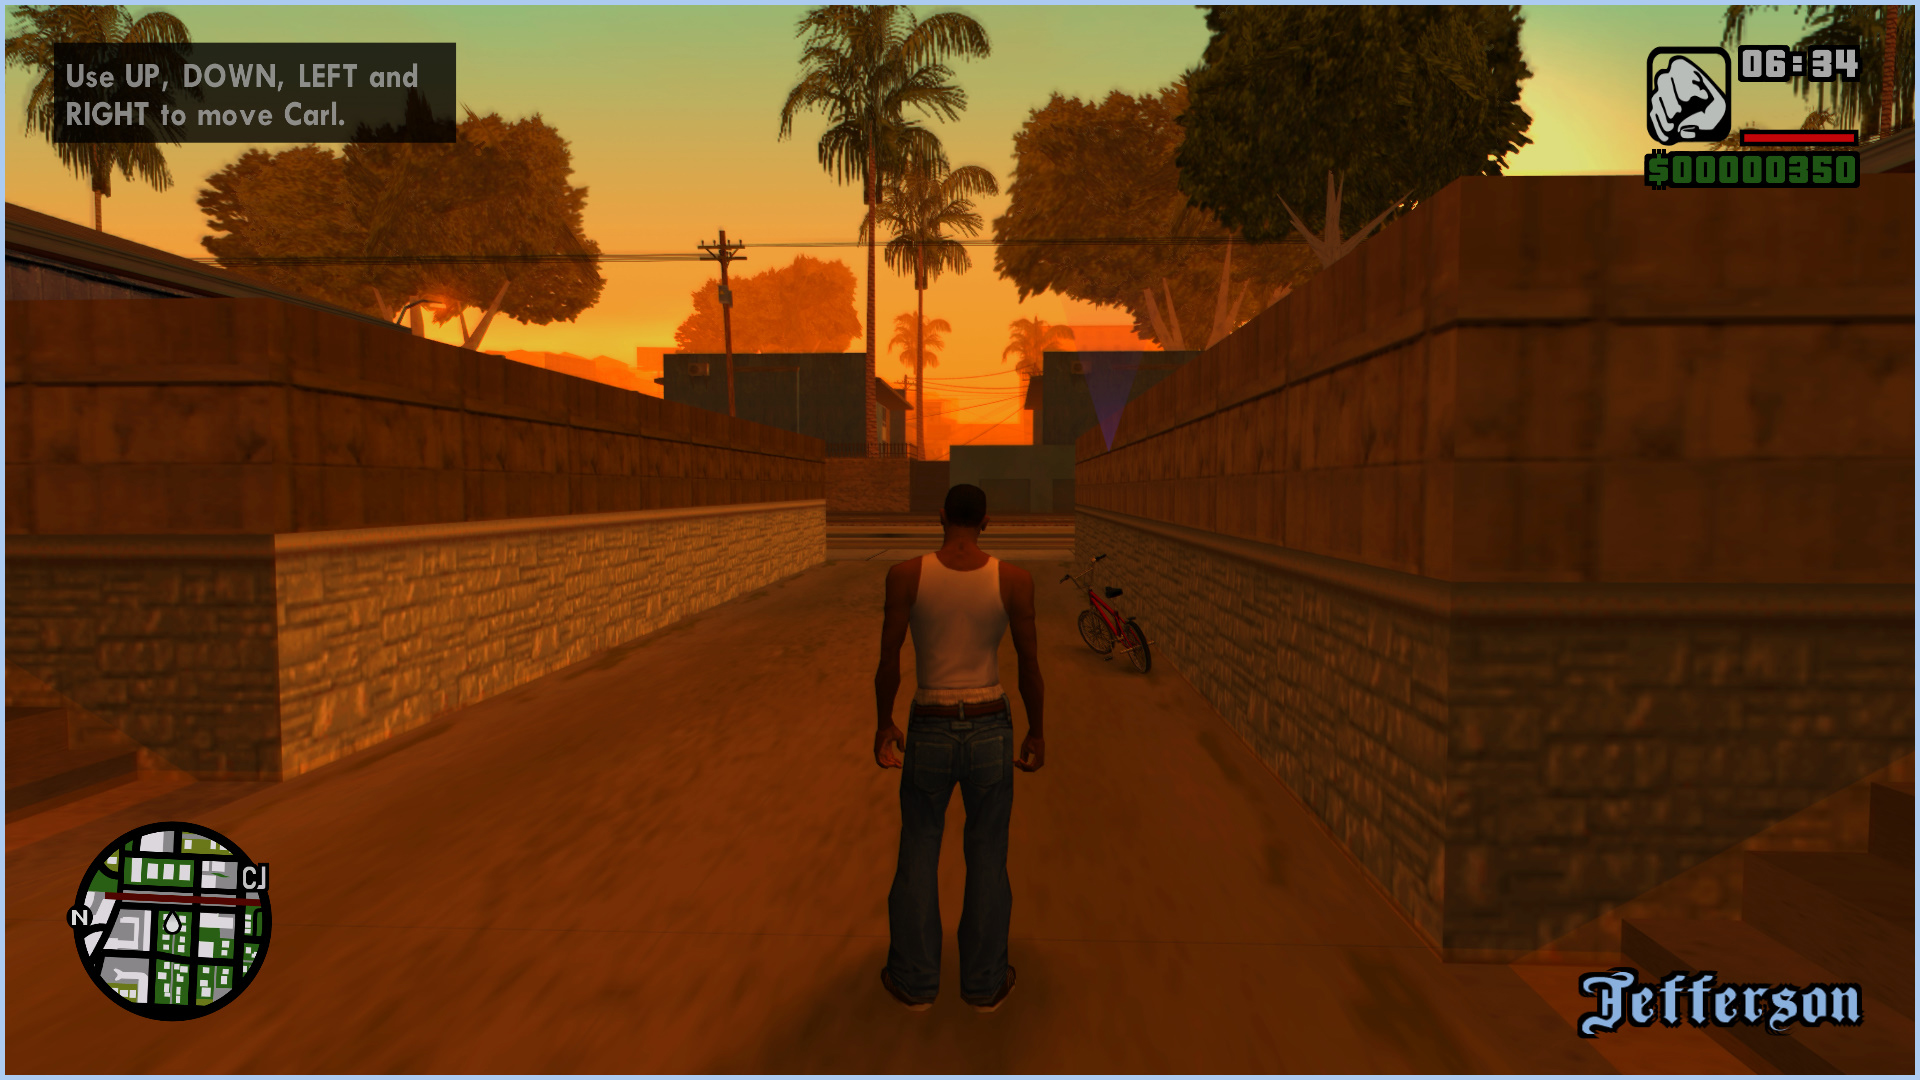 gta san andreas remastered 2018 download